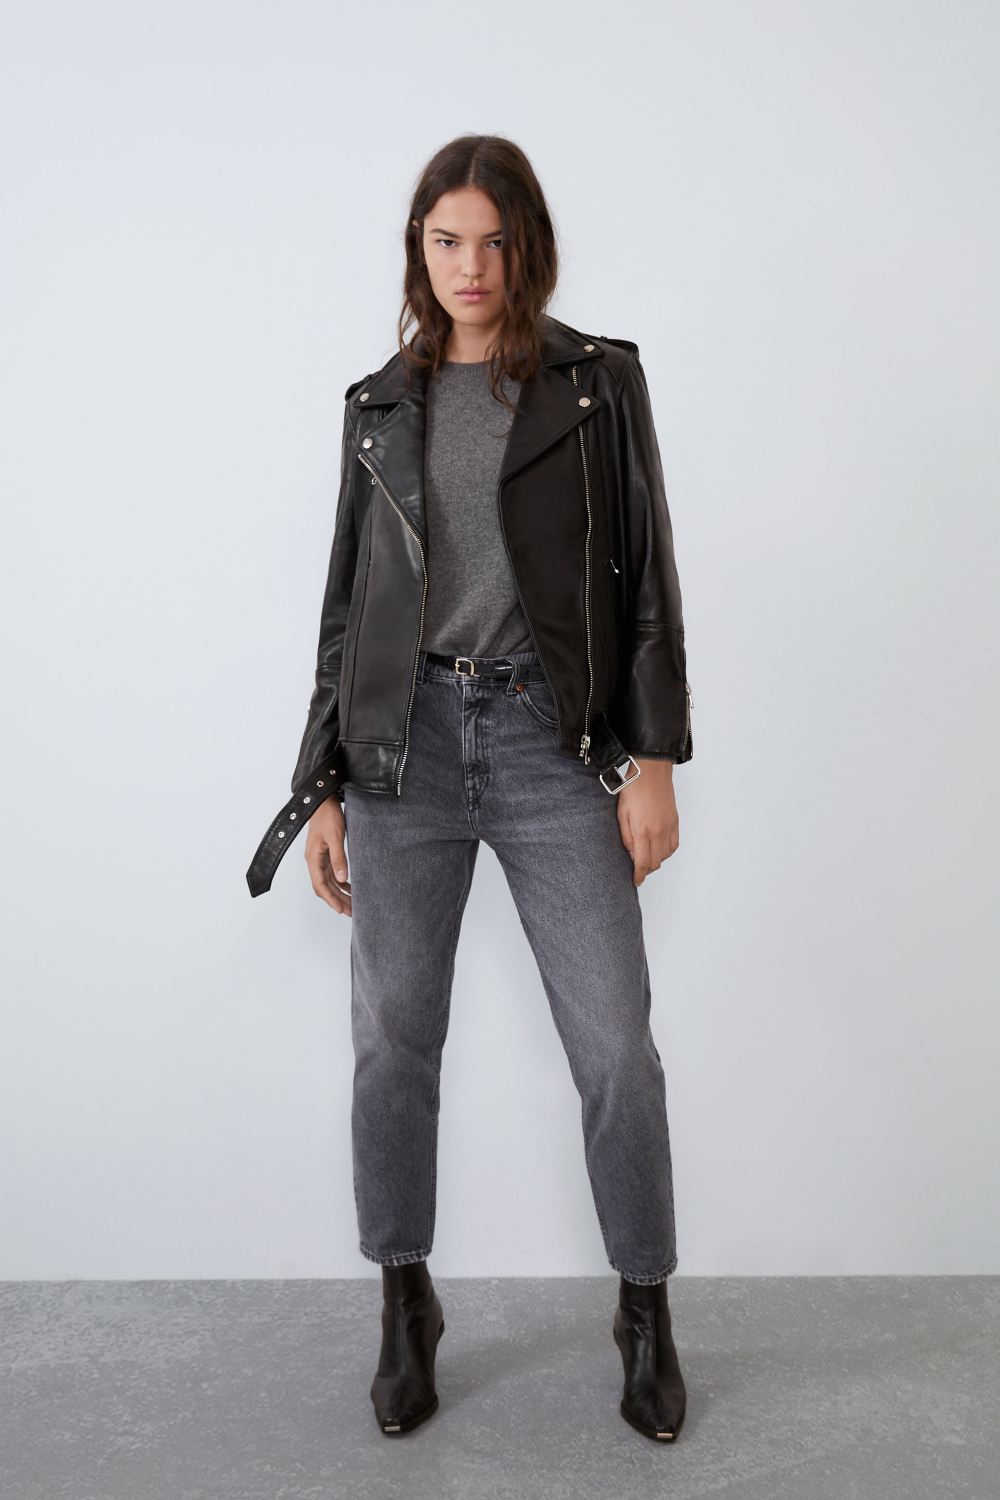 Women S Jackets New Collection Online Zara United States Leather Jacket Jacket Outfit Women Leather Jacket Outfits [ 1500 x 1000 Pixel ]